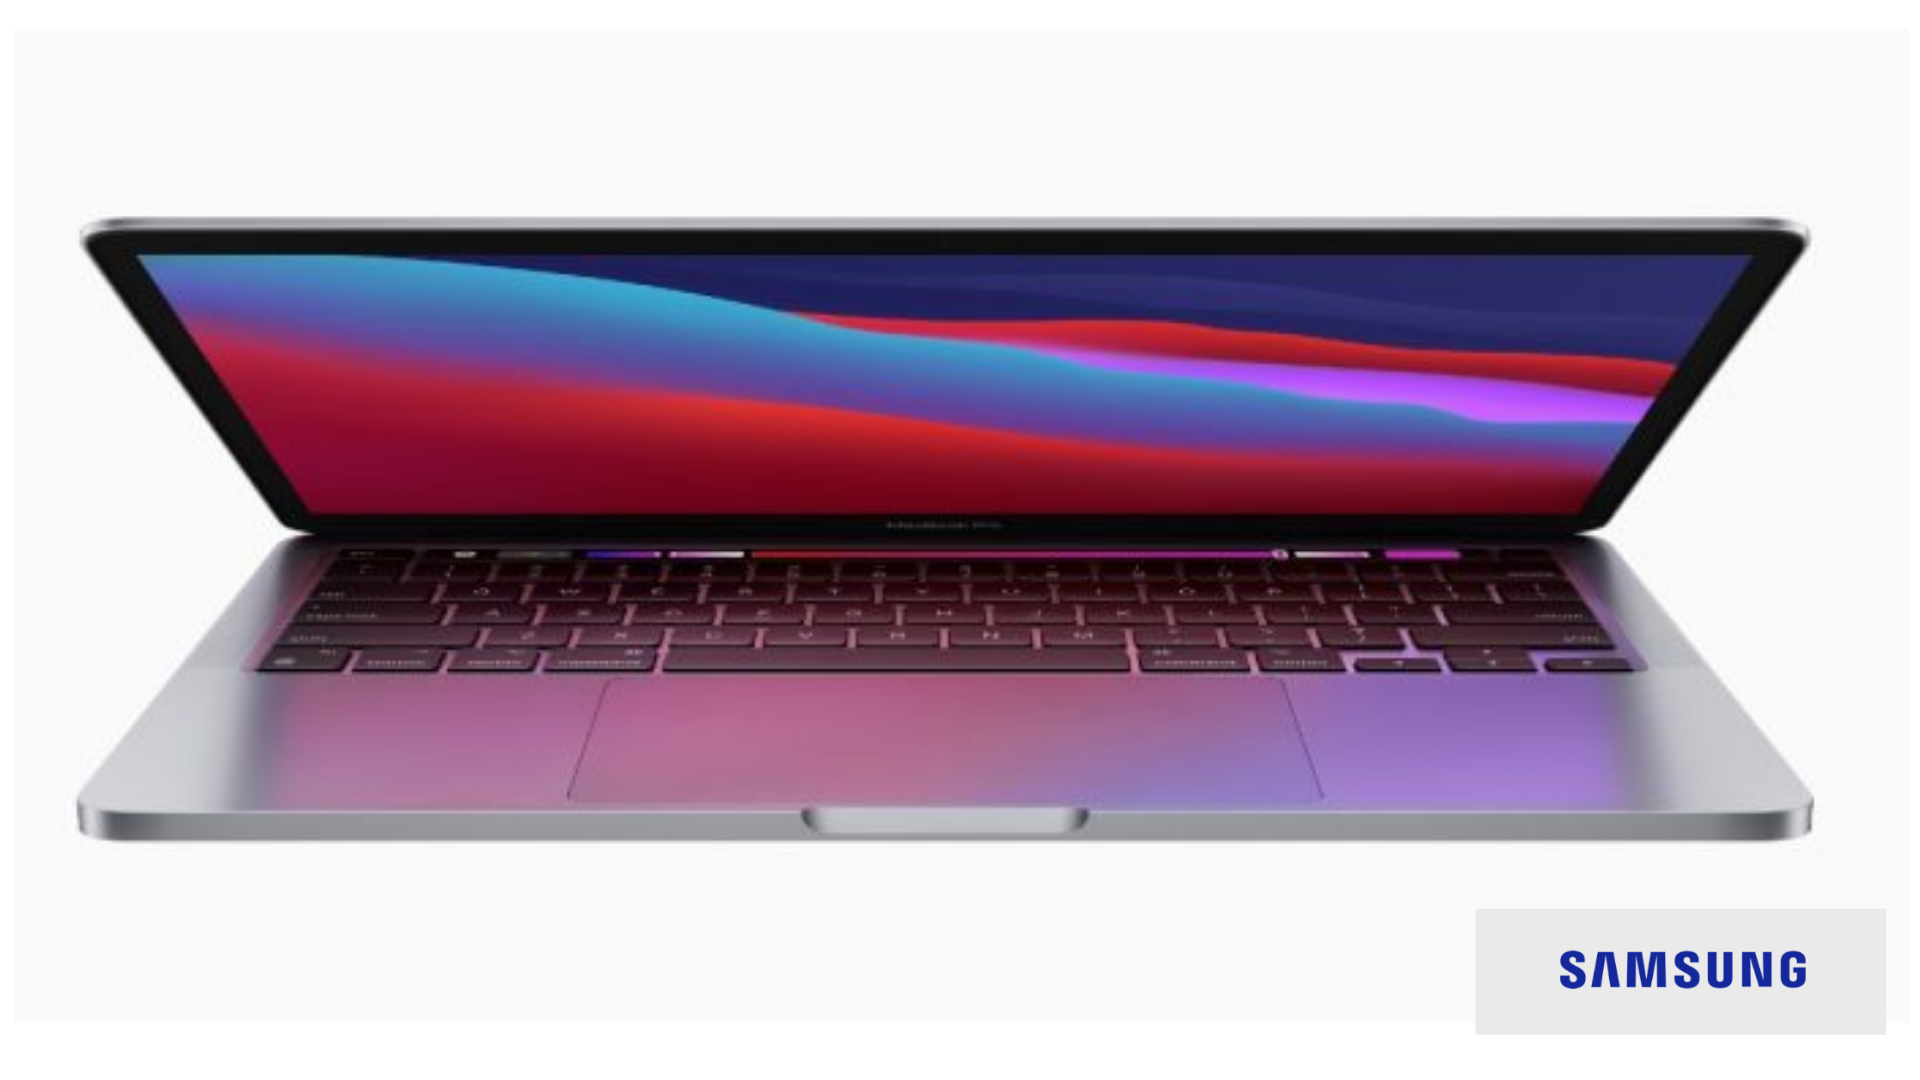 Samsung reportedly will be producing OLED panels for 2022 Apple MacBook Pro models